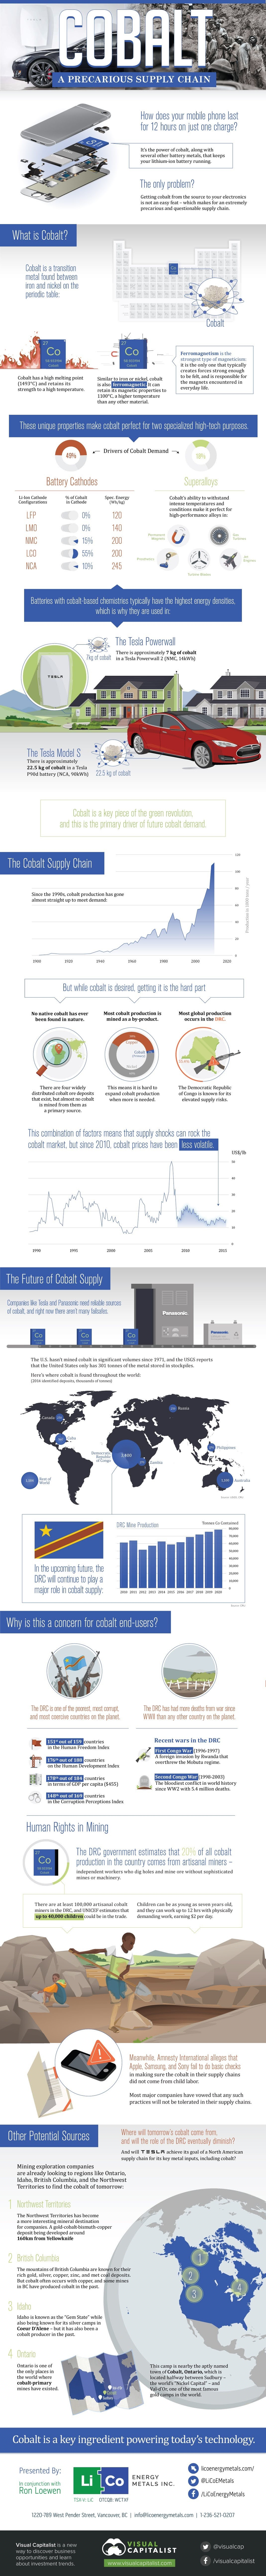 Cobalt: A Precarious Supply Chain #infographic